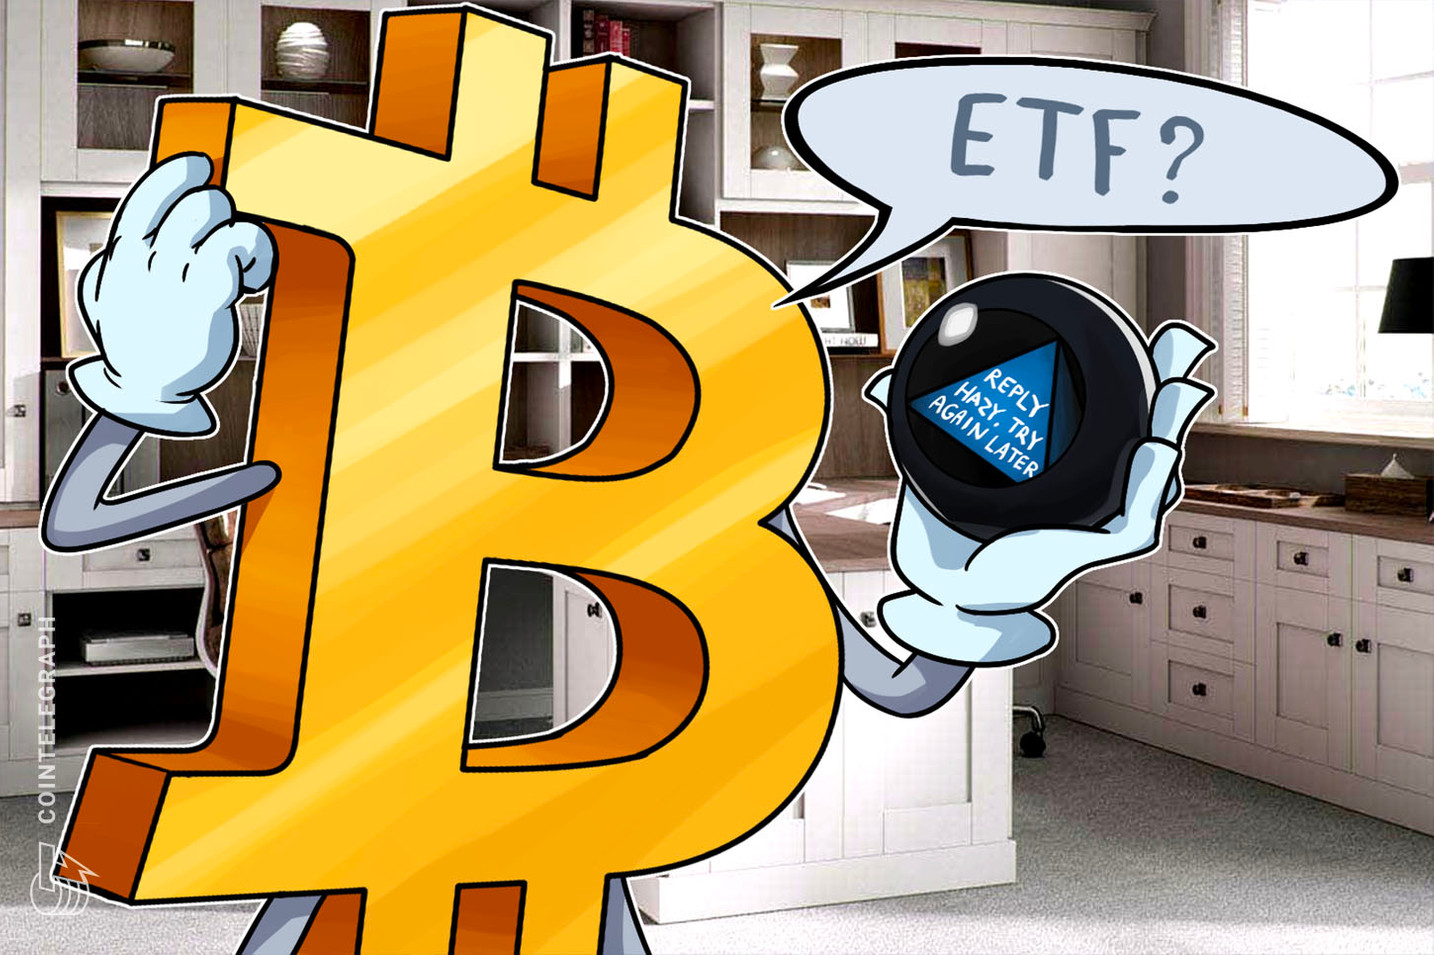 SEC Delays Decision on Bitcoin ETF, Sets Deadline for Late February